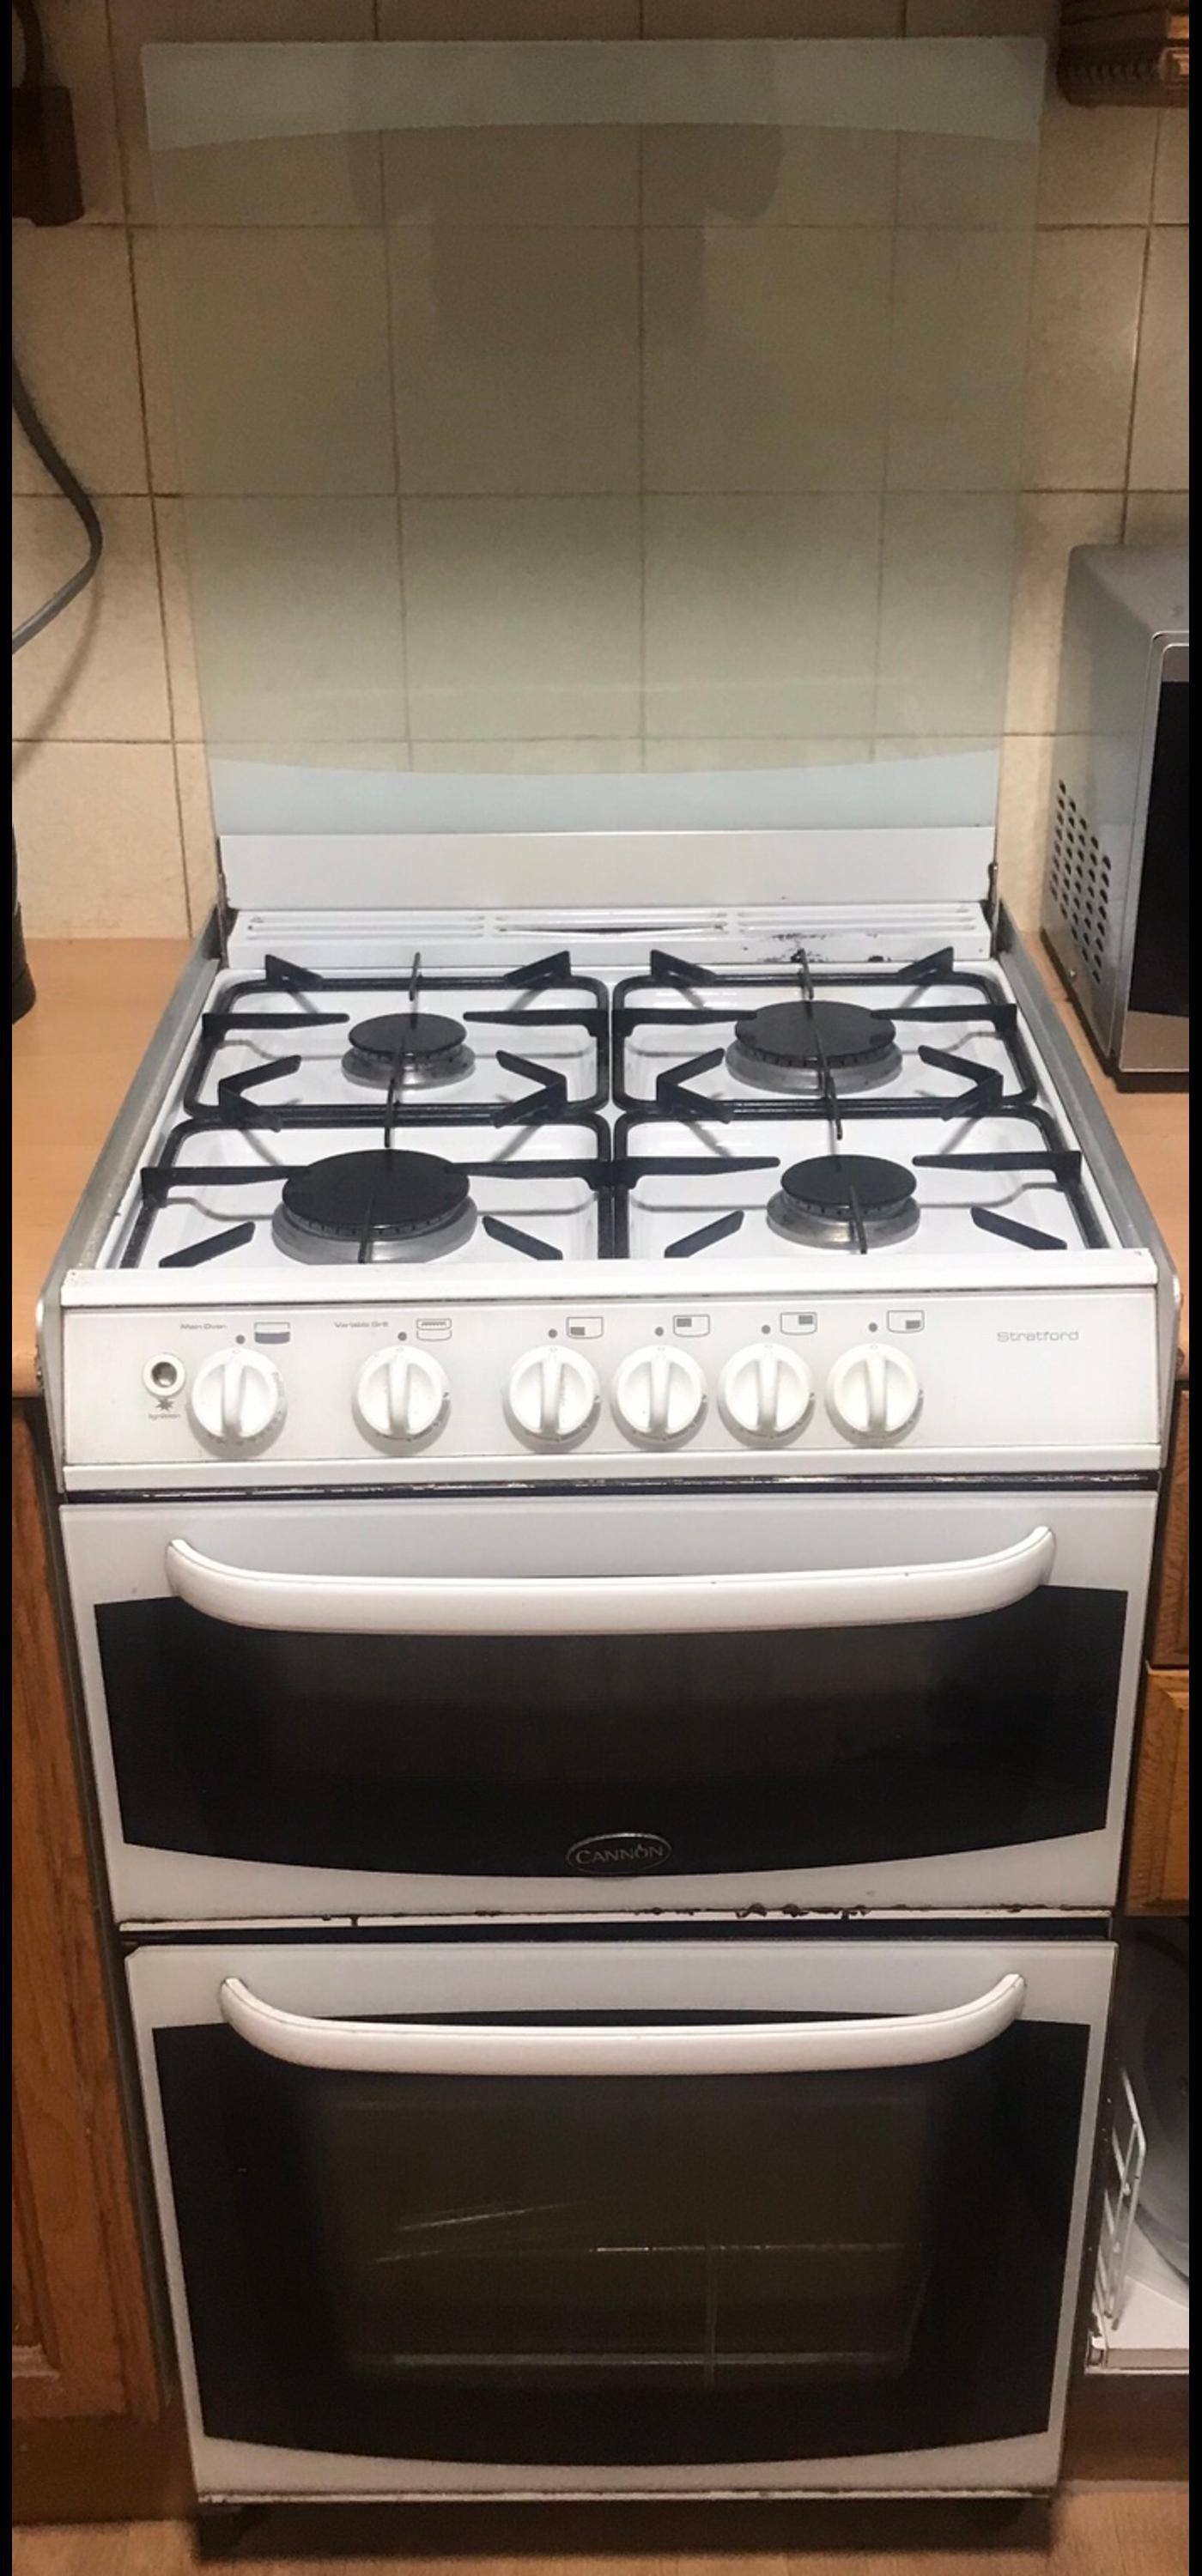 Gas Cooker with Grill and Oven in CV11 Bedworth für 10,00 £ kaufen